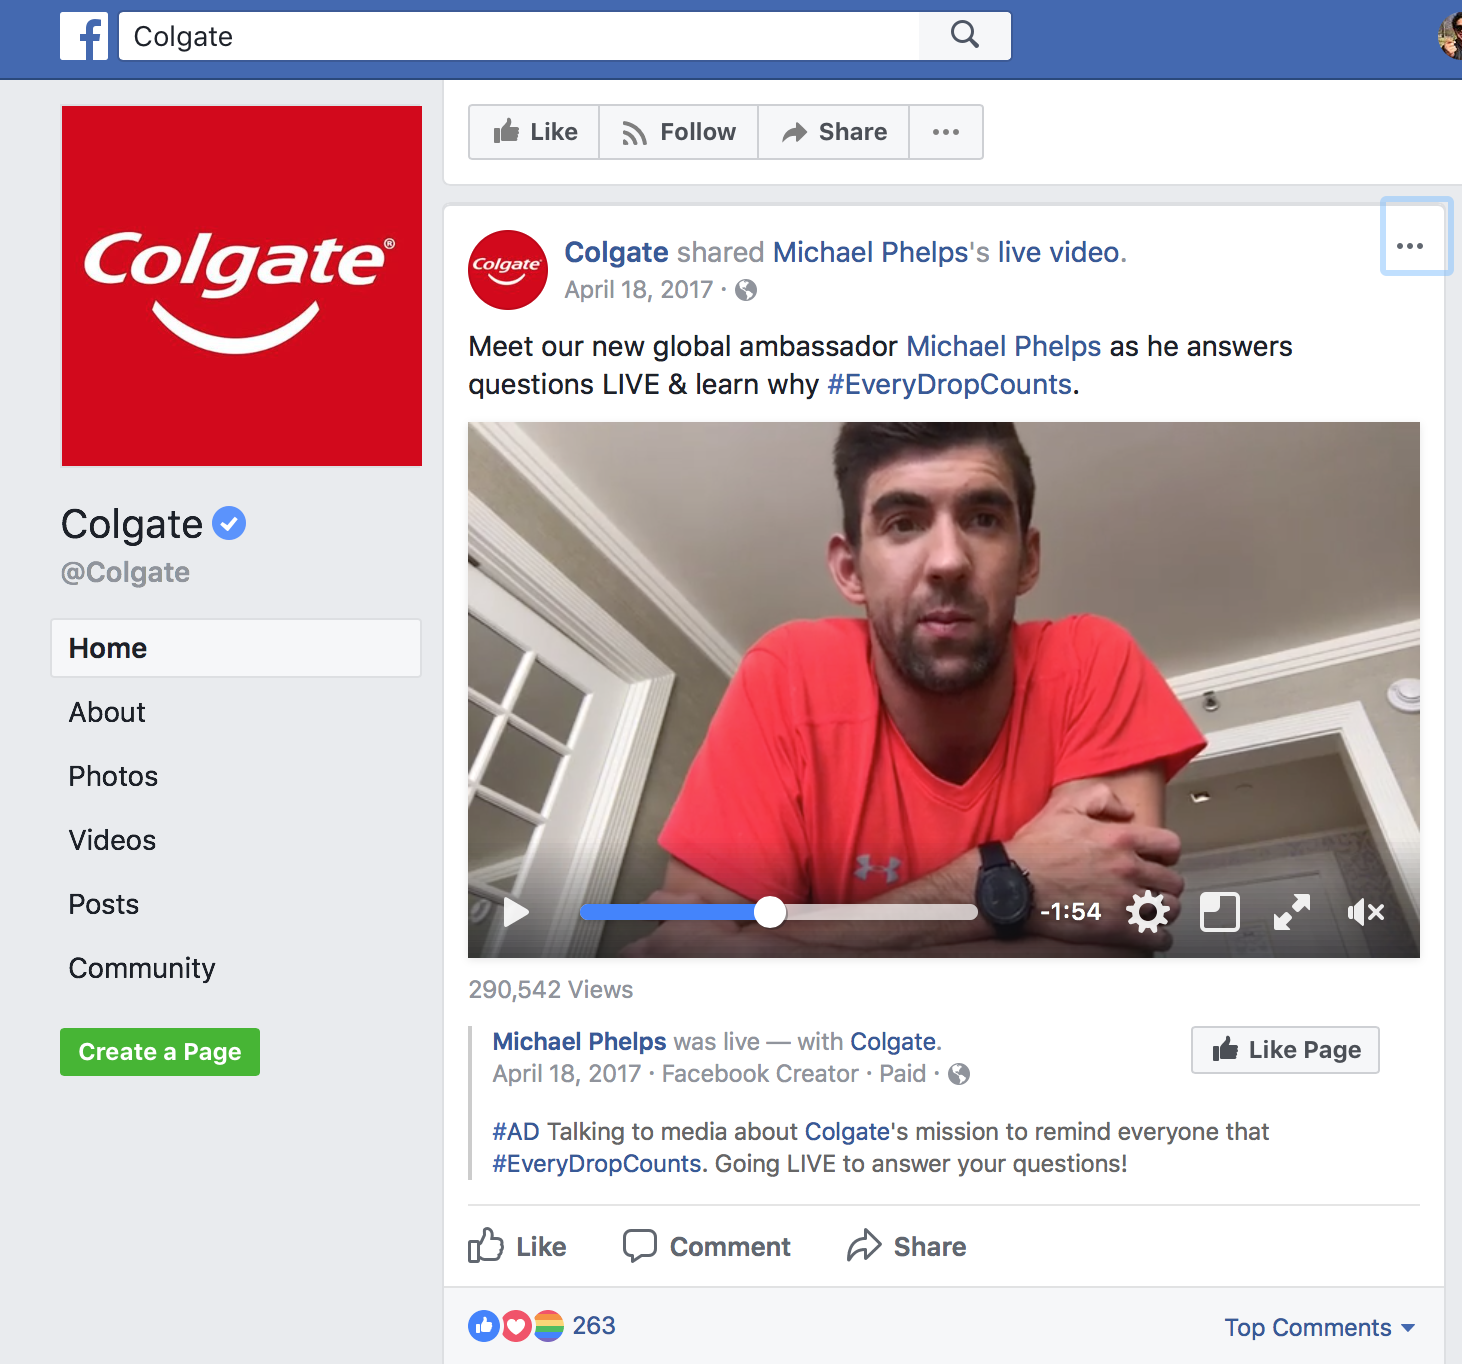 In a Facebook Live video, Michael Phelps connected with his fans to answer questions about saving water